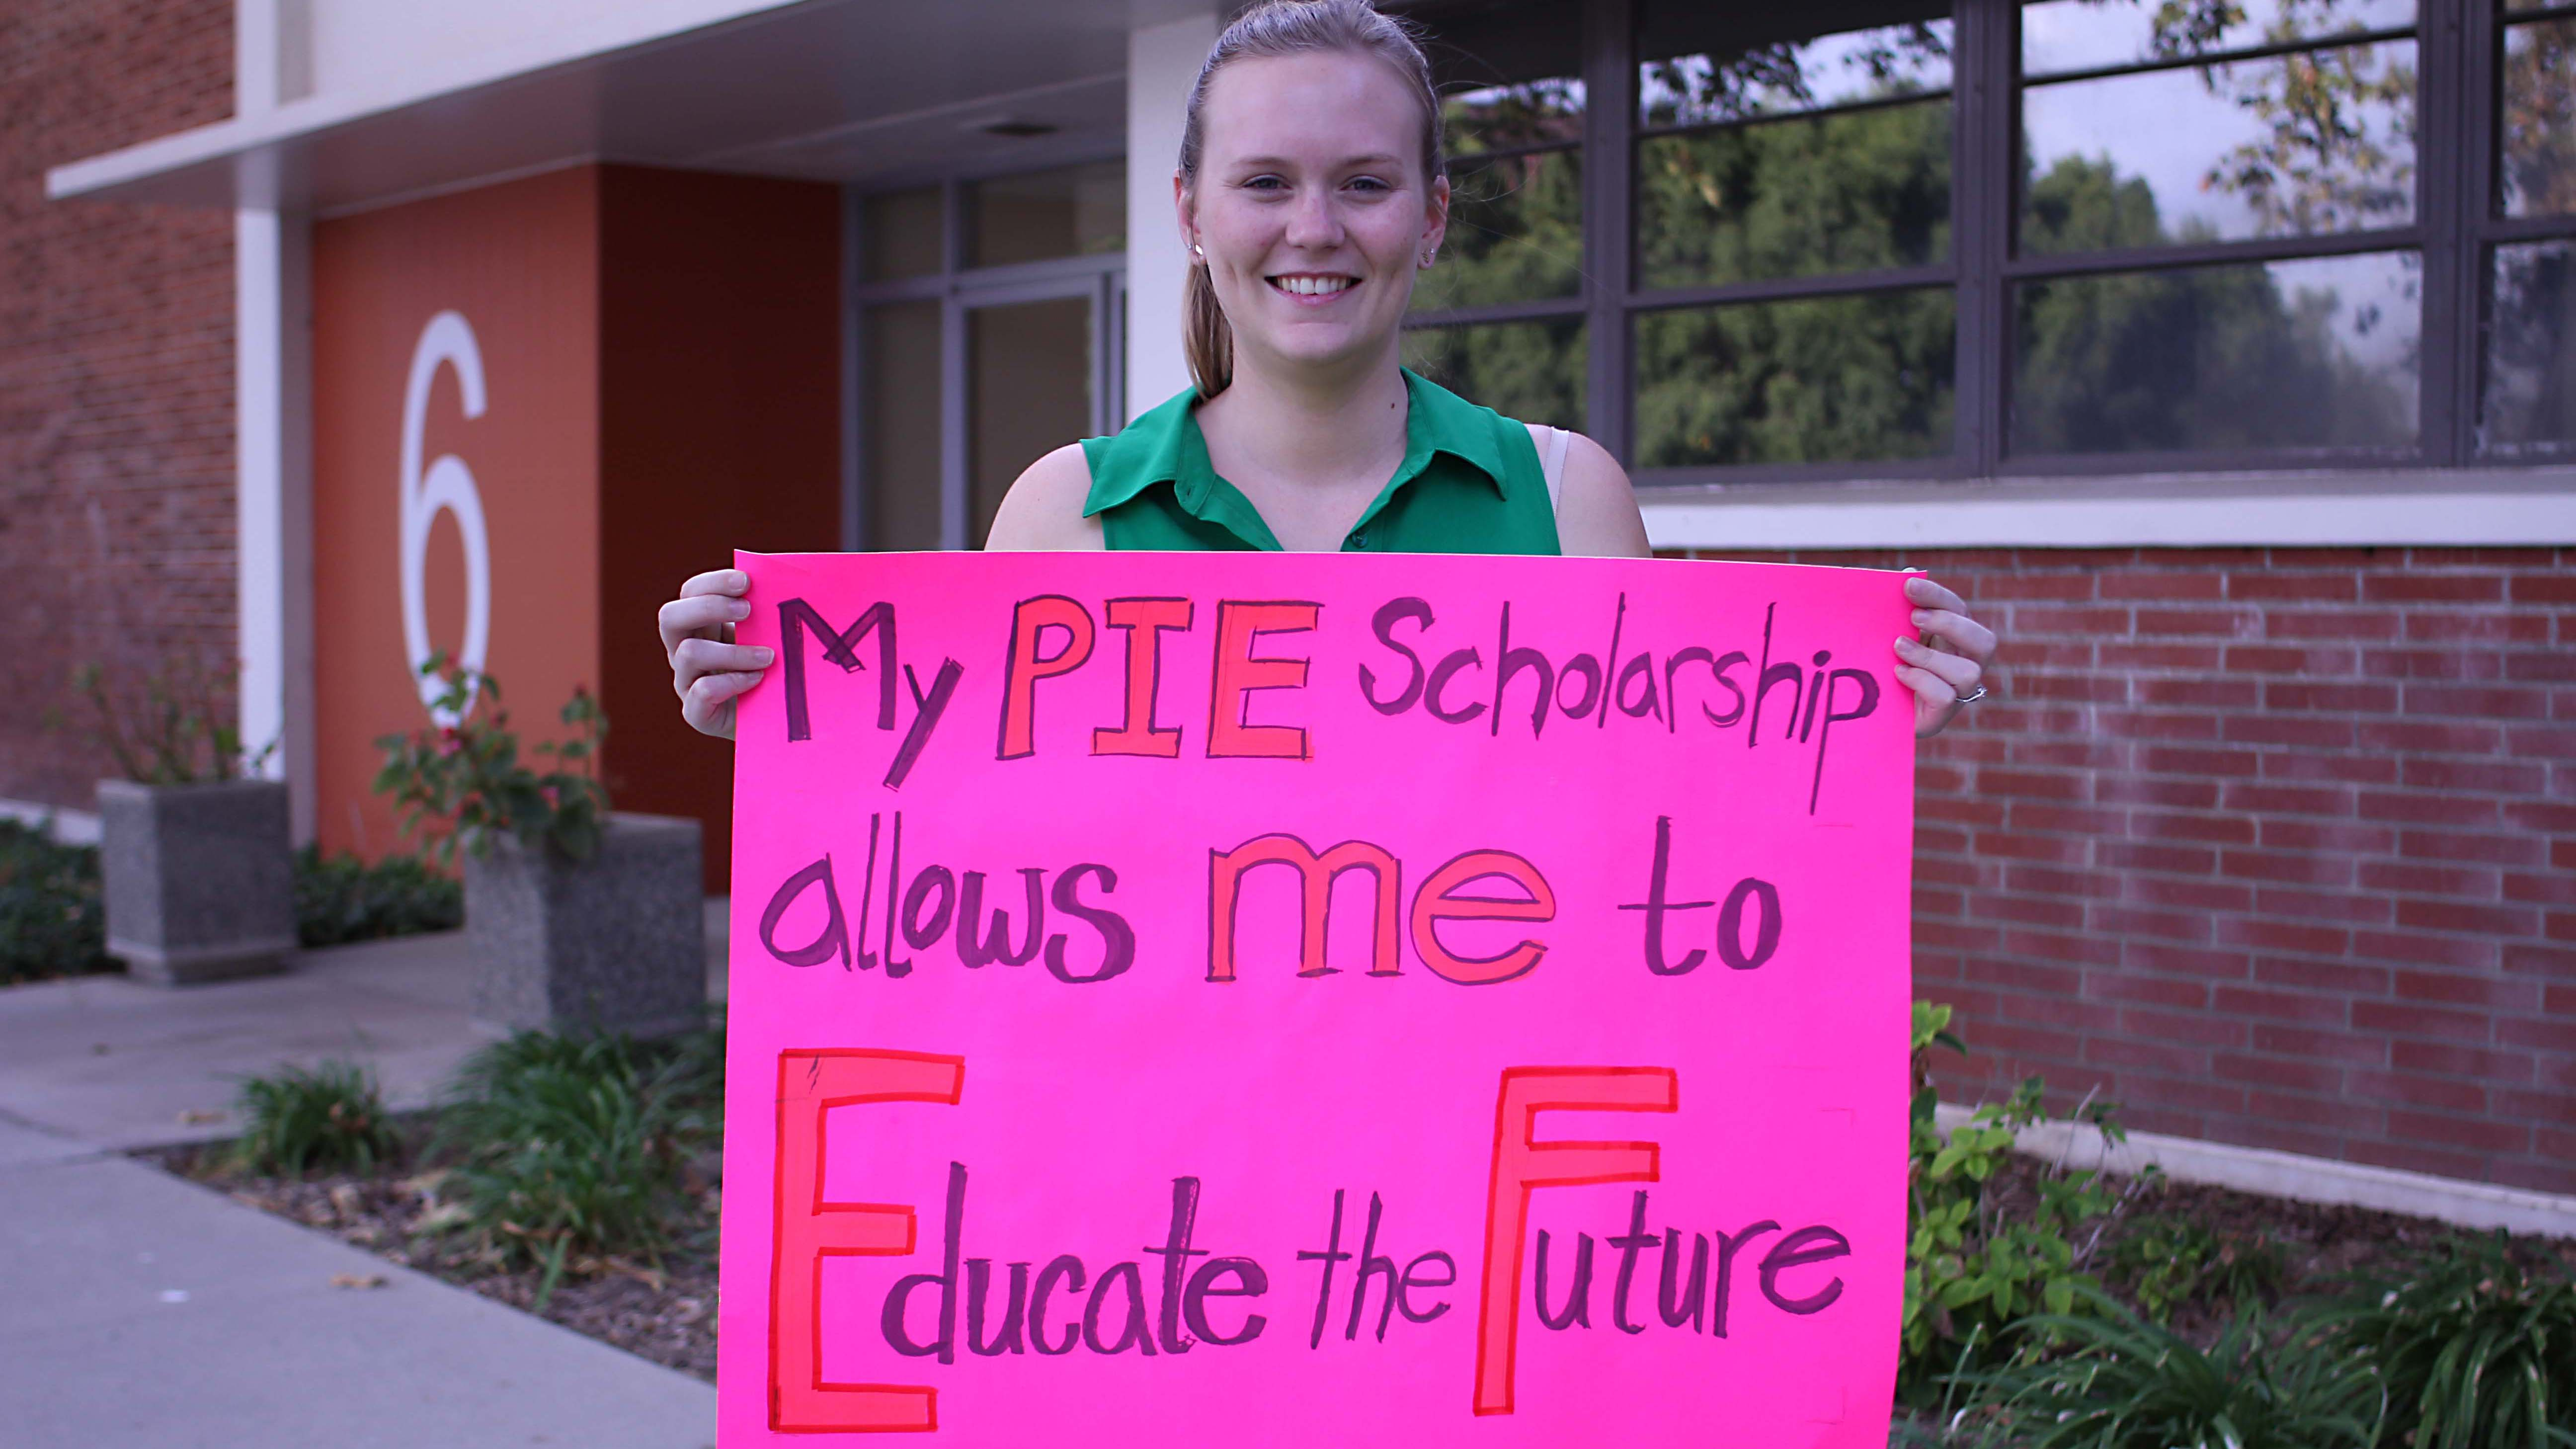 The PIE Scholarship will receive matching funds from the 36-hour Build the Future campaign.